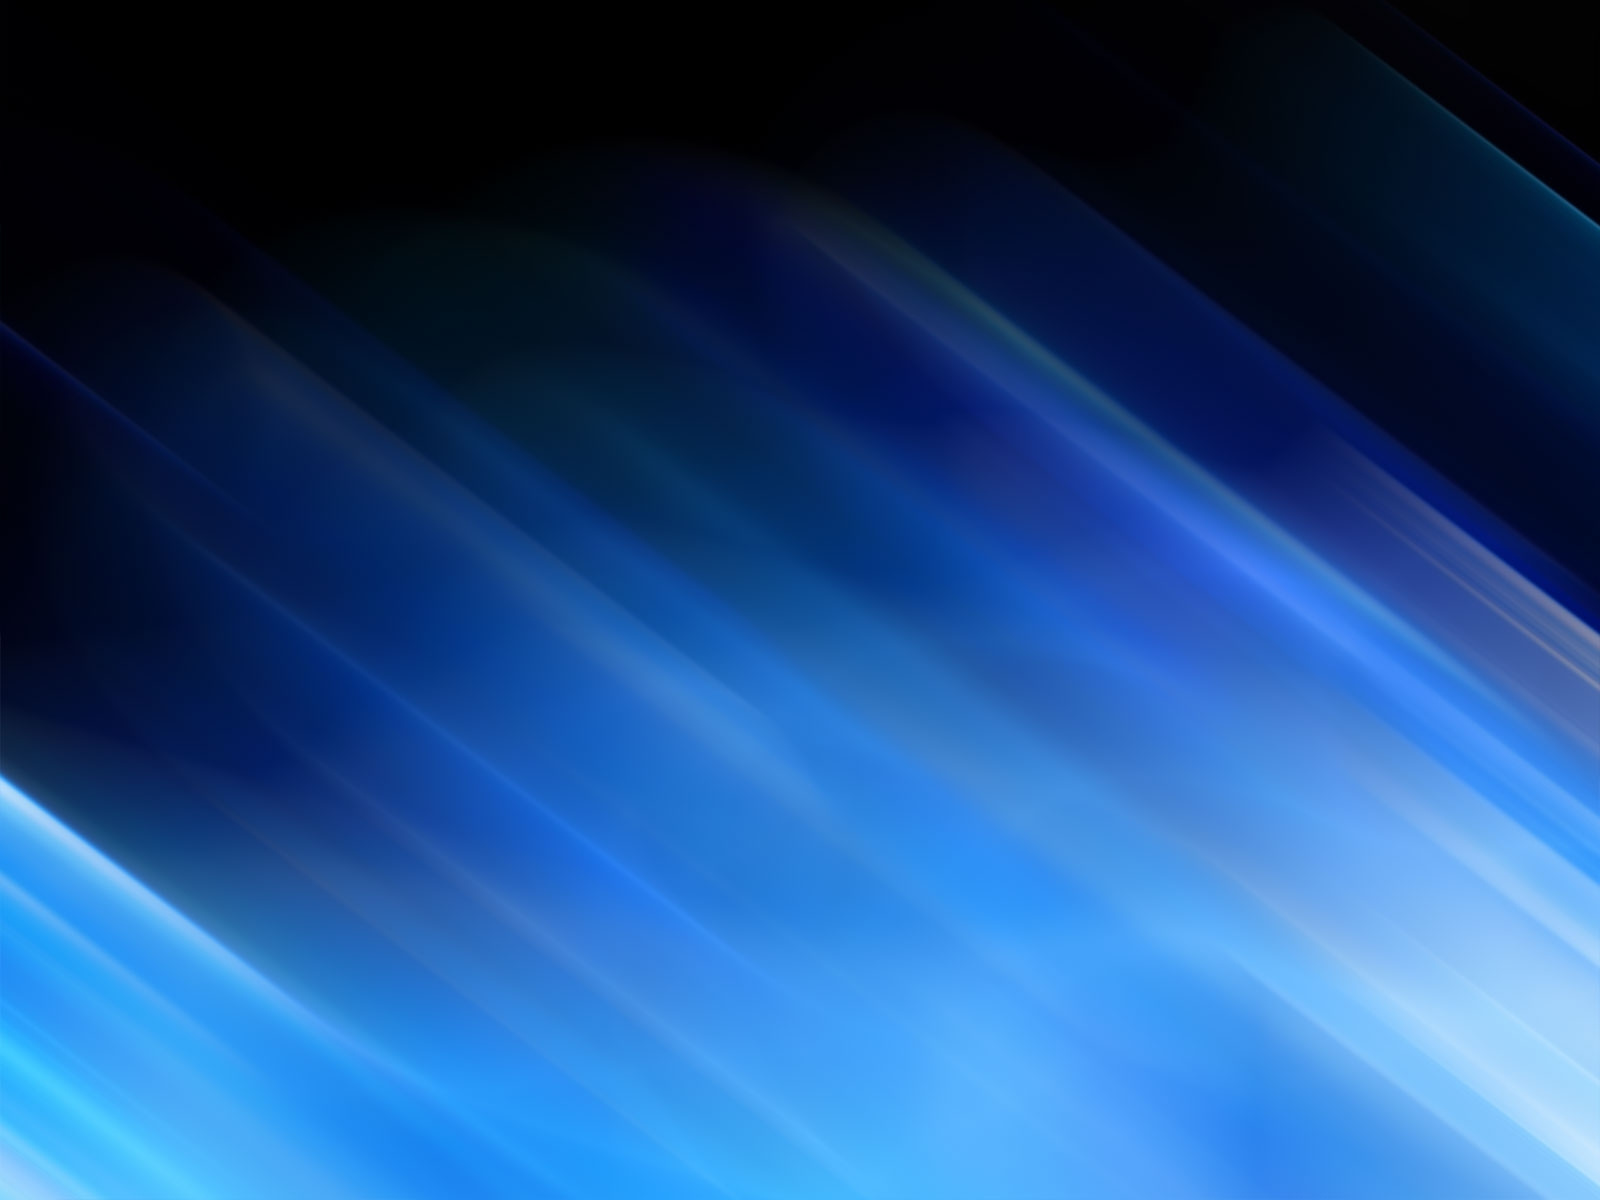 Dark blue wallpapers wallpapers for free download about (, 1600x1200